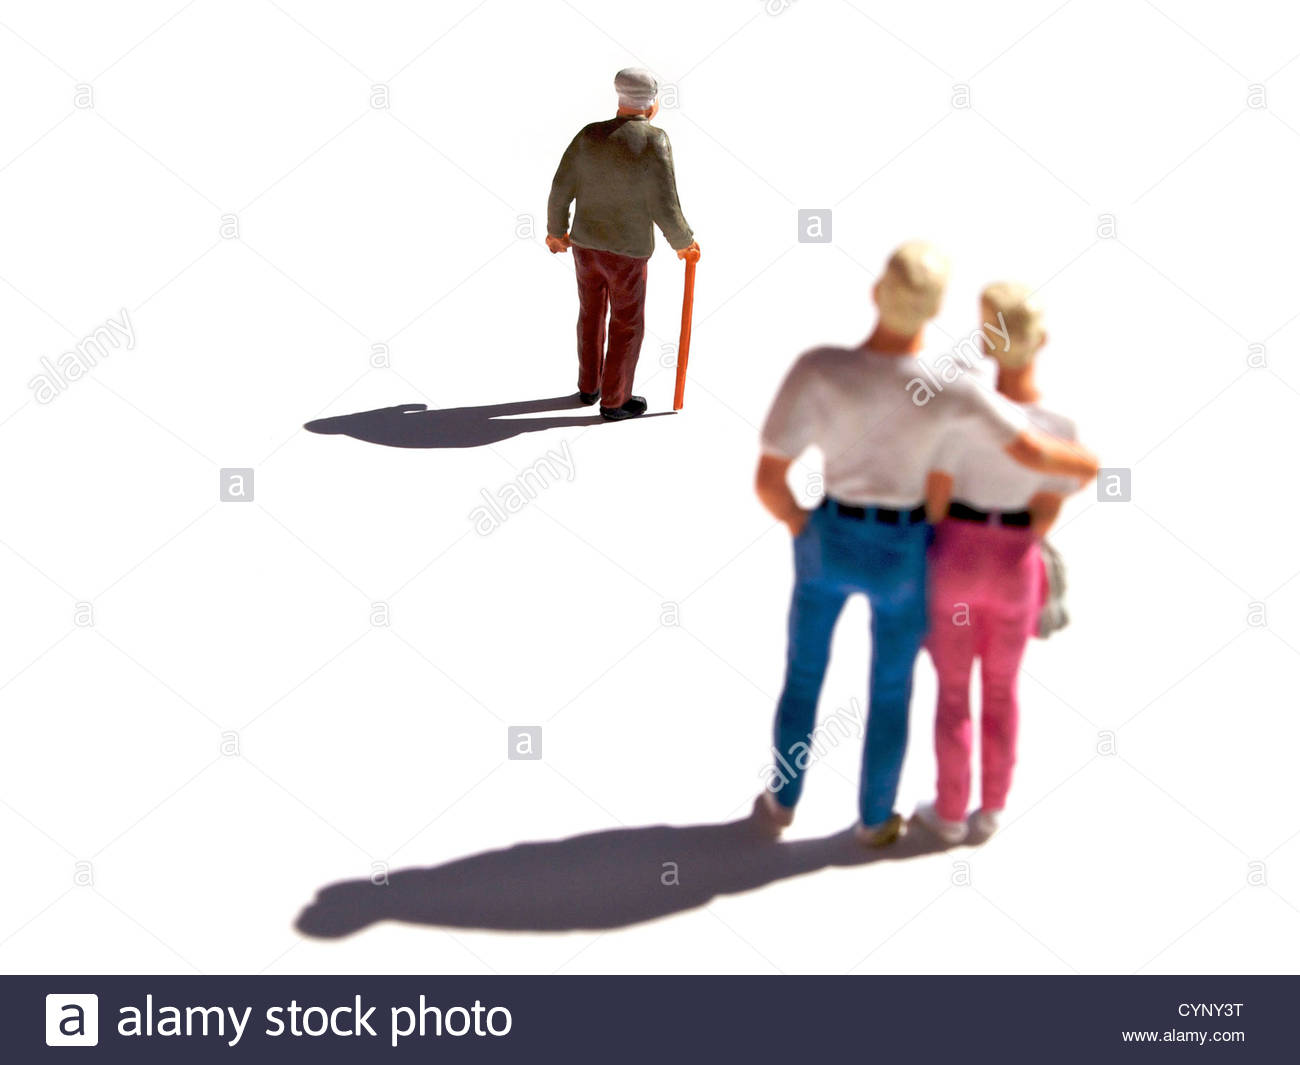 Small toy figures - Stock Image